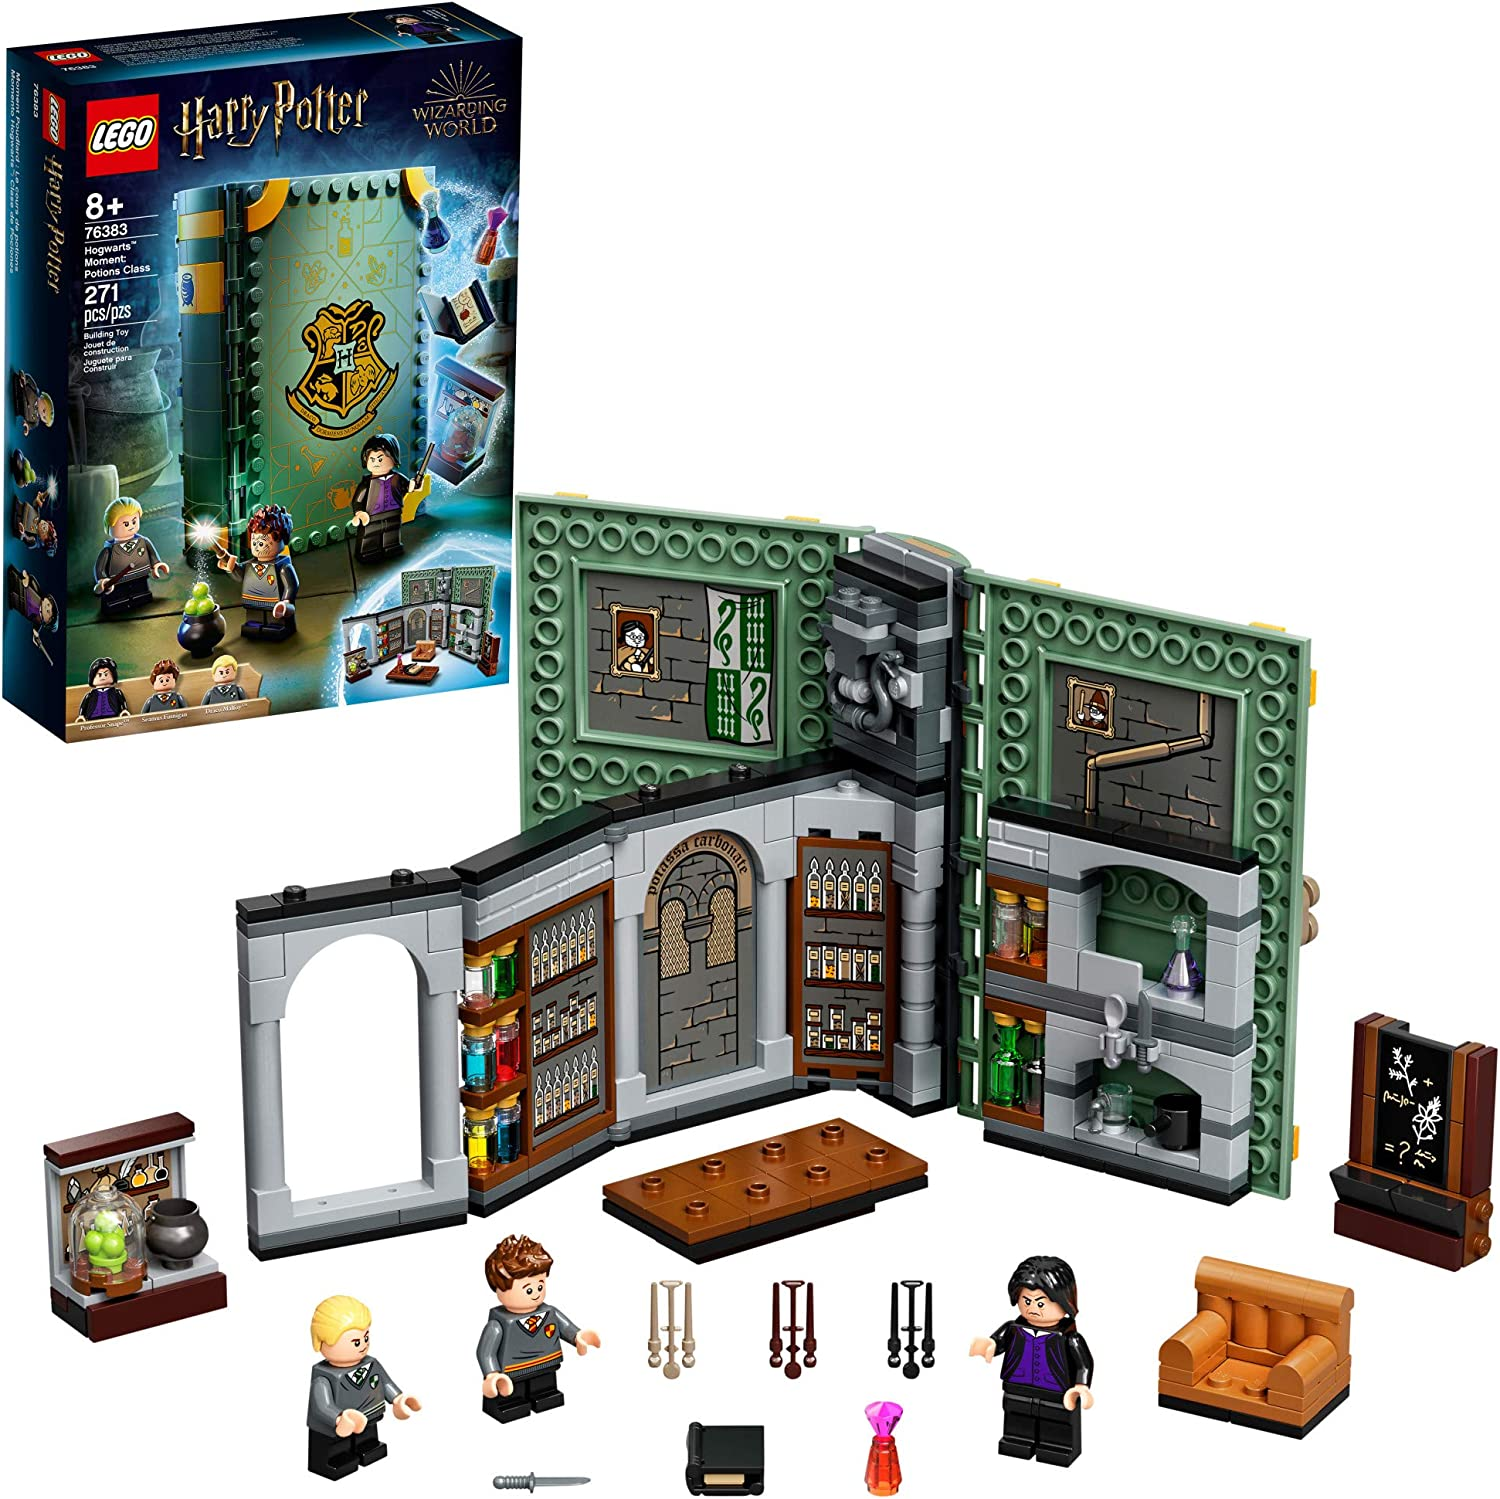 Lego Harry Potter Hogwarts Moment Potions Class 76383 Brick Built Playset With Professor Snape S Potions Class New 2021 270 Pieces Toys Games